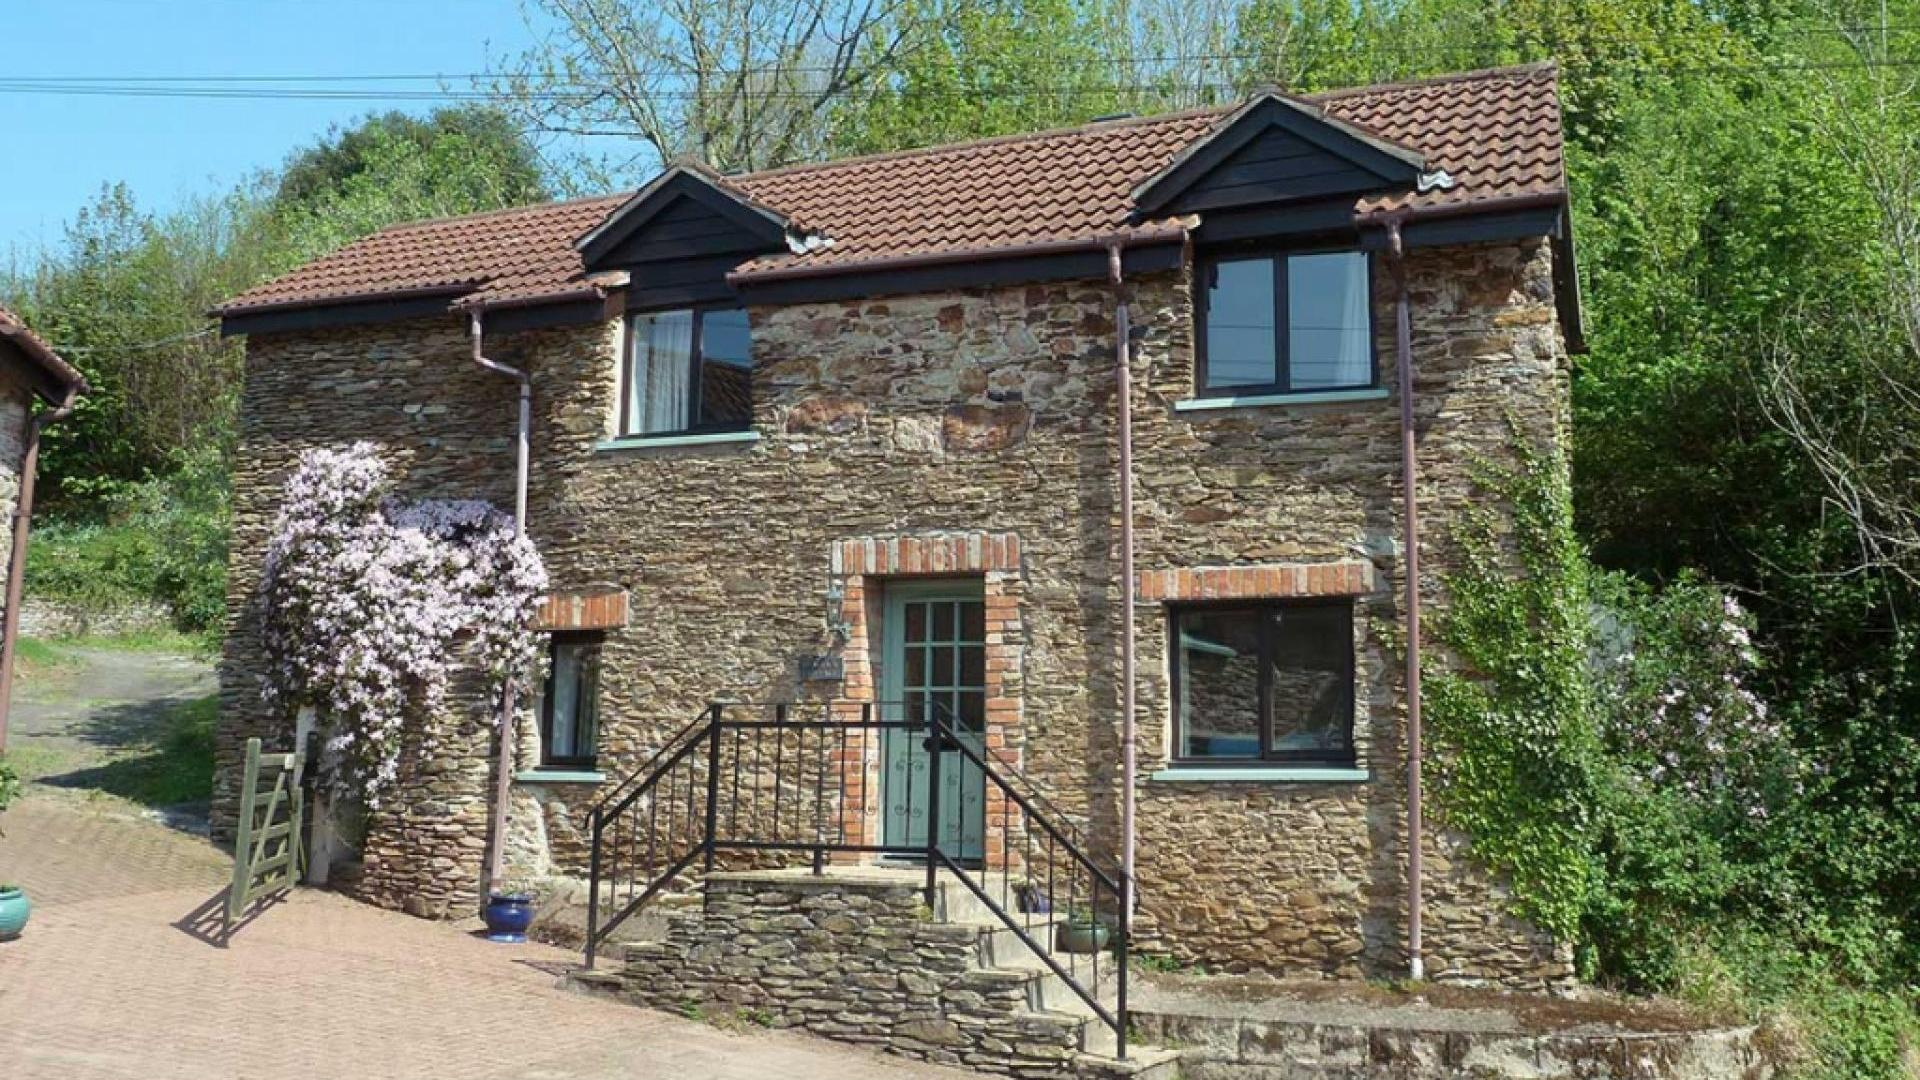 2 Bedroom Private cottage/shared facilities in Devon, United Kingdom